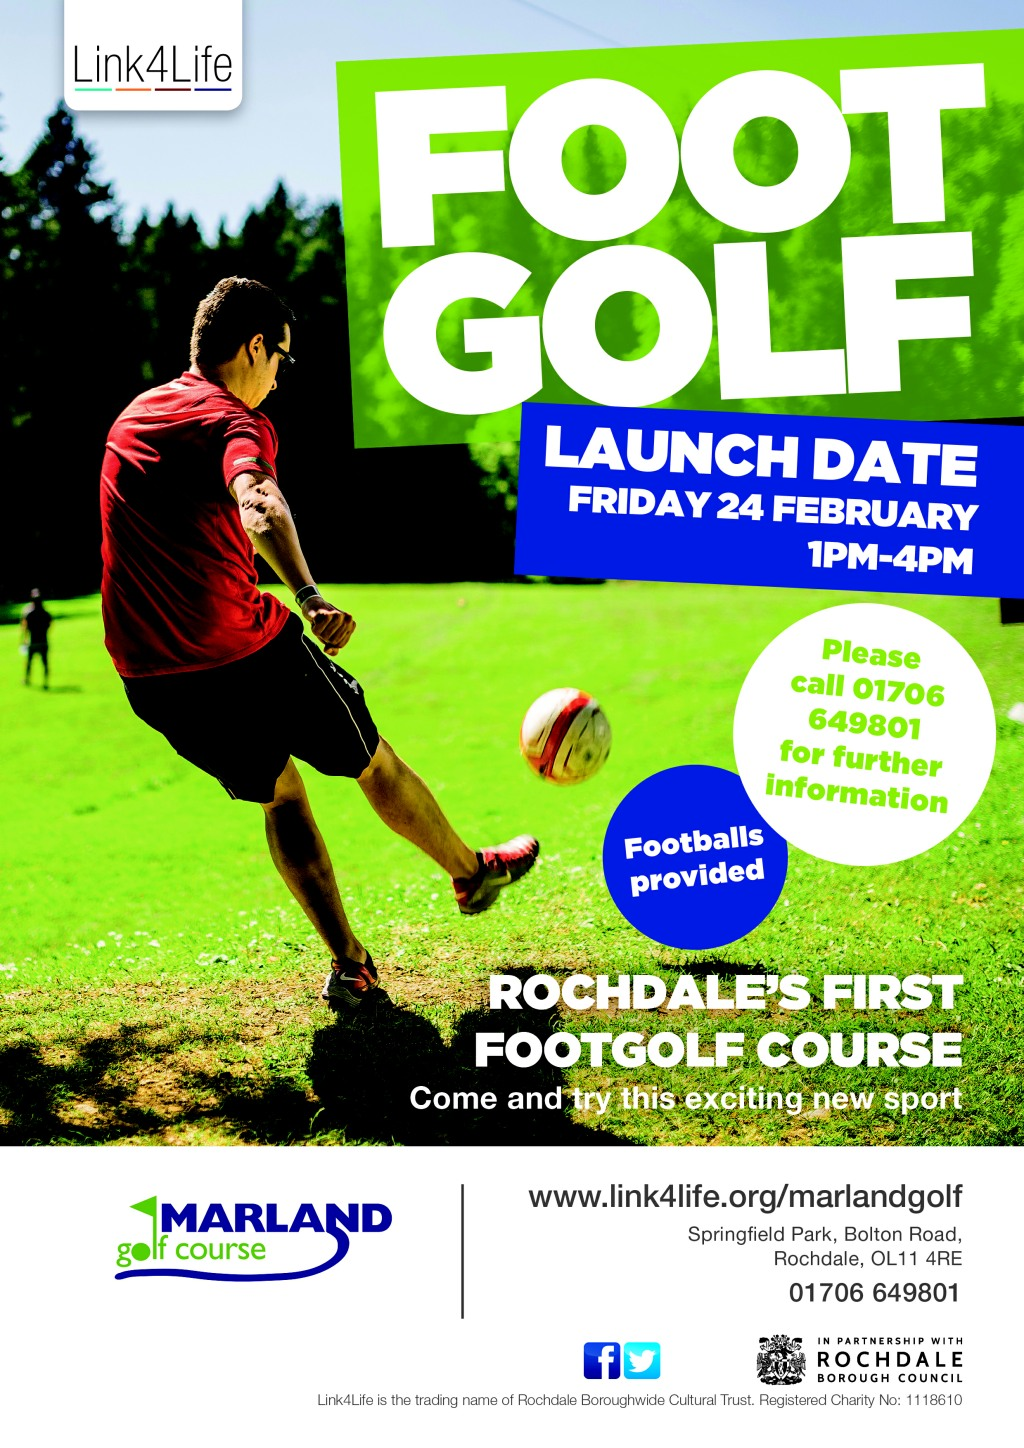 81137-footgolf-marland-golf-course